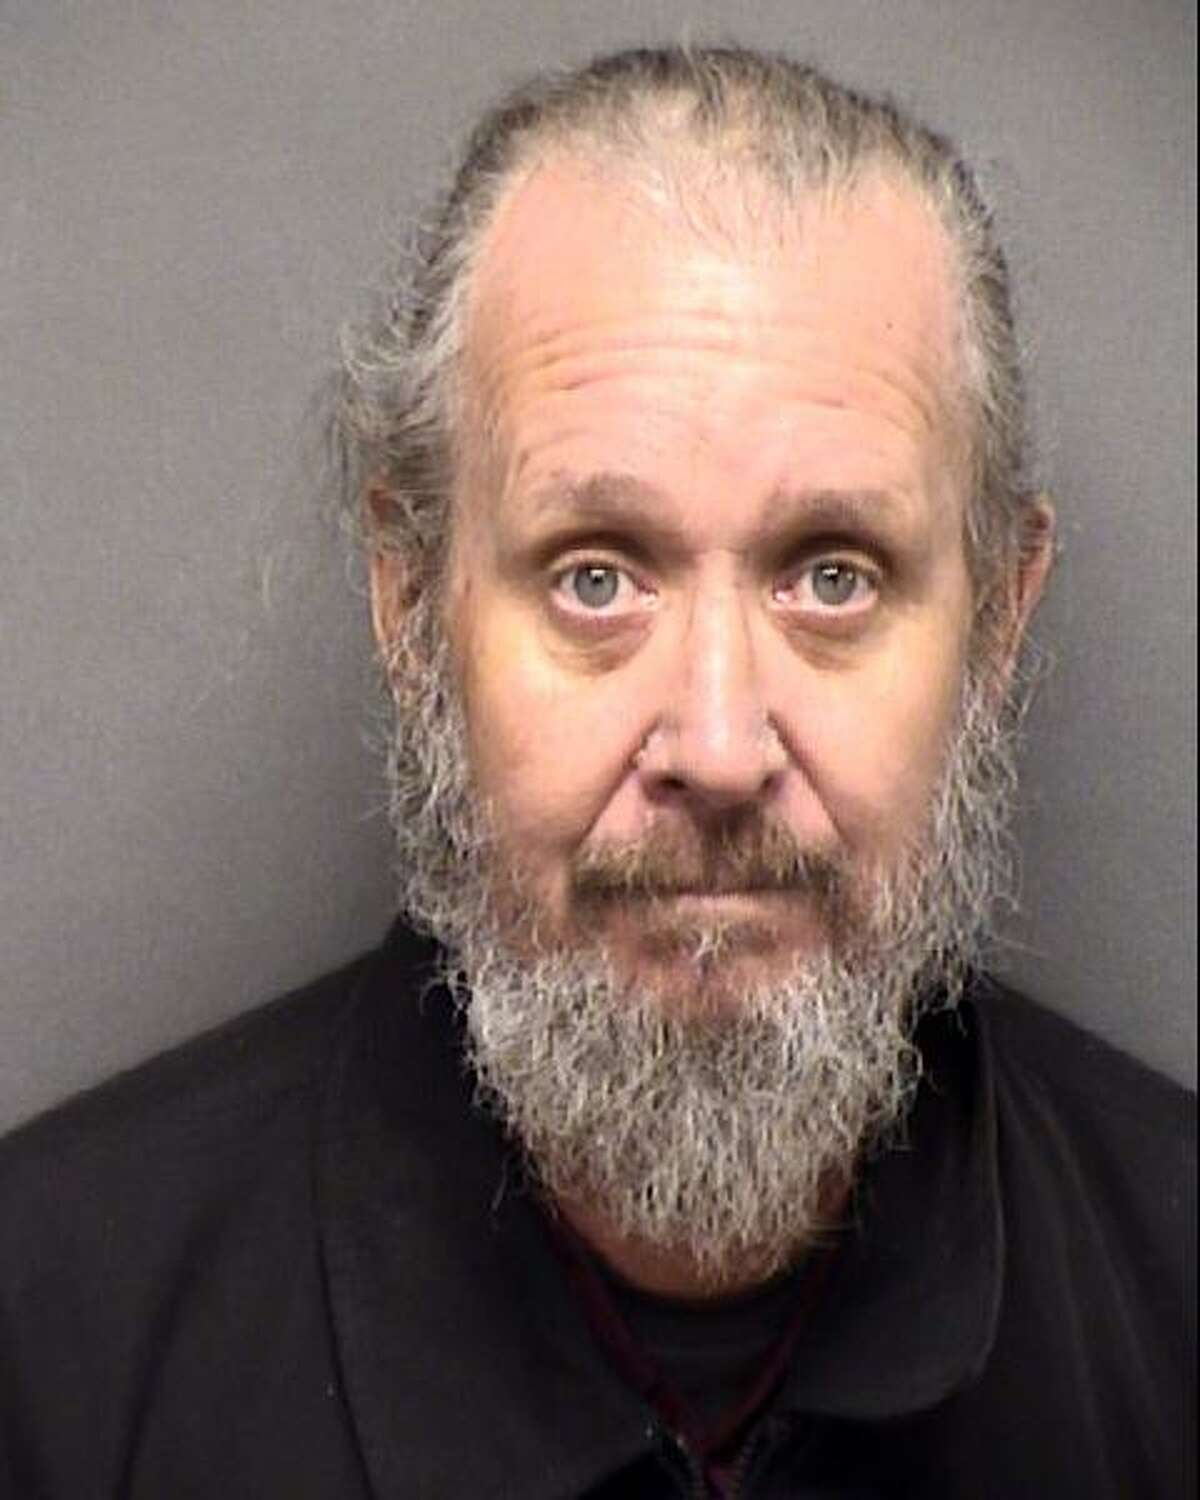 Bradford Hudson, 59, of California, is in Bexar County jail, charged with capital murder in the 2013 death of Martha Batchelor, 53.